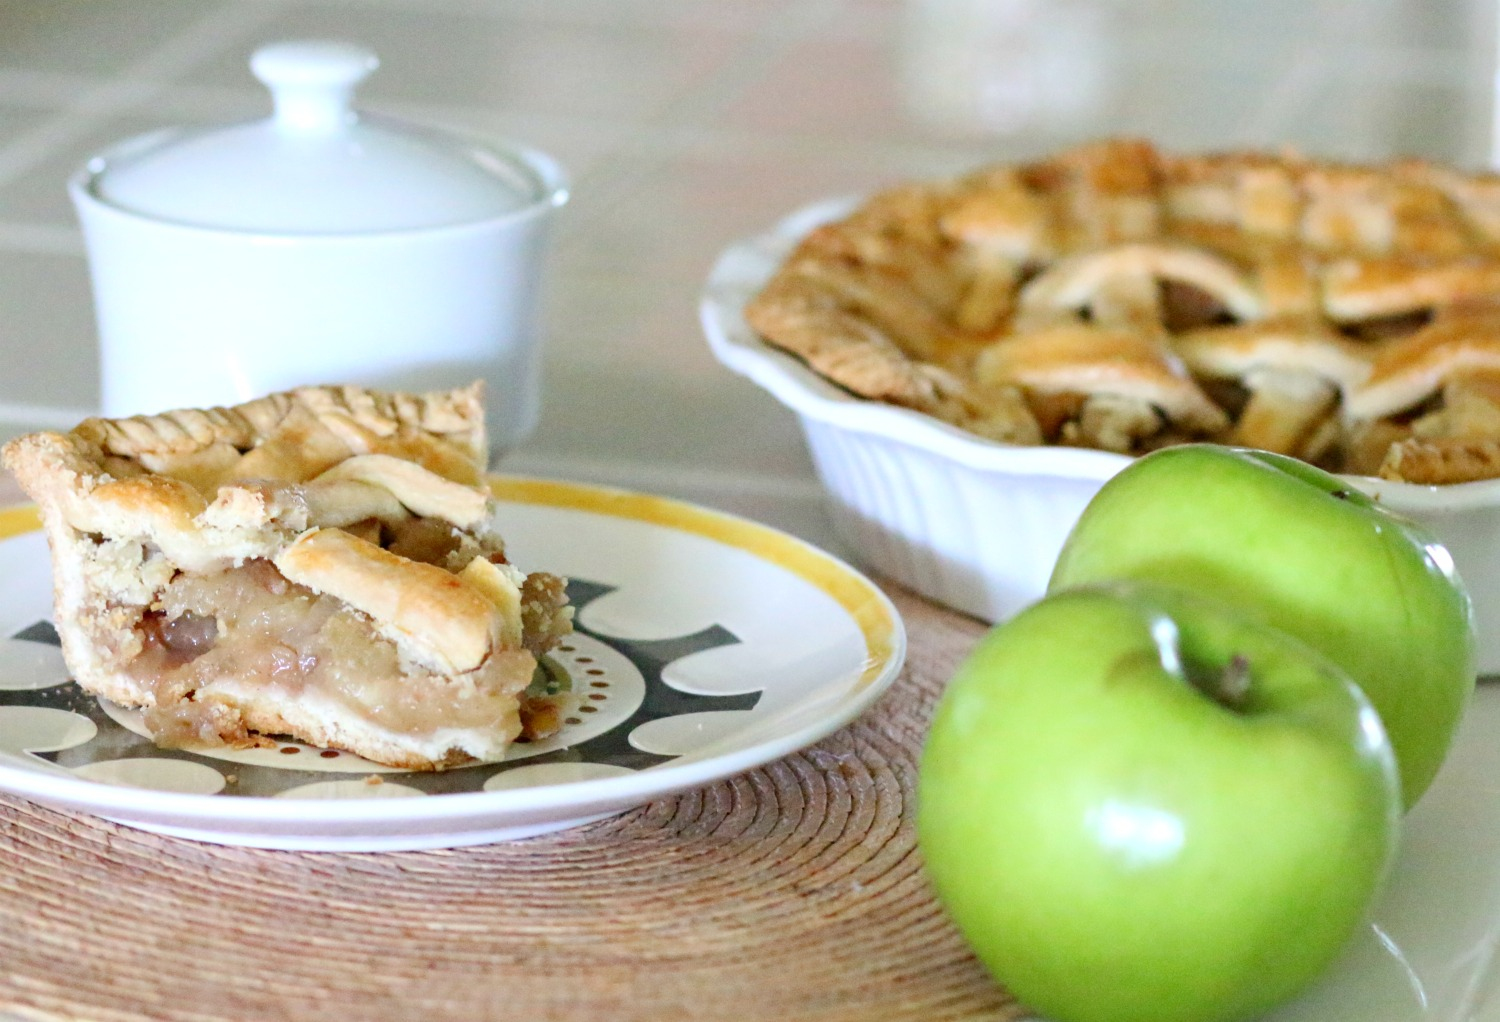 Homemade-Apple-Pie-Recipe.jpg